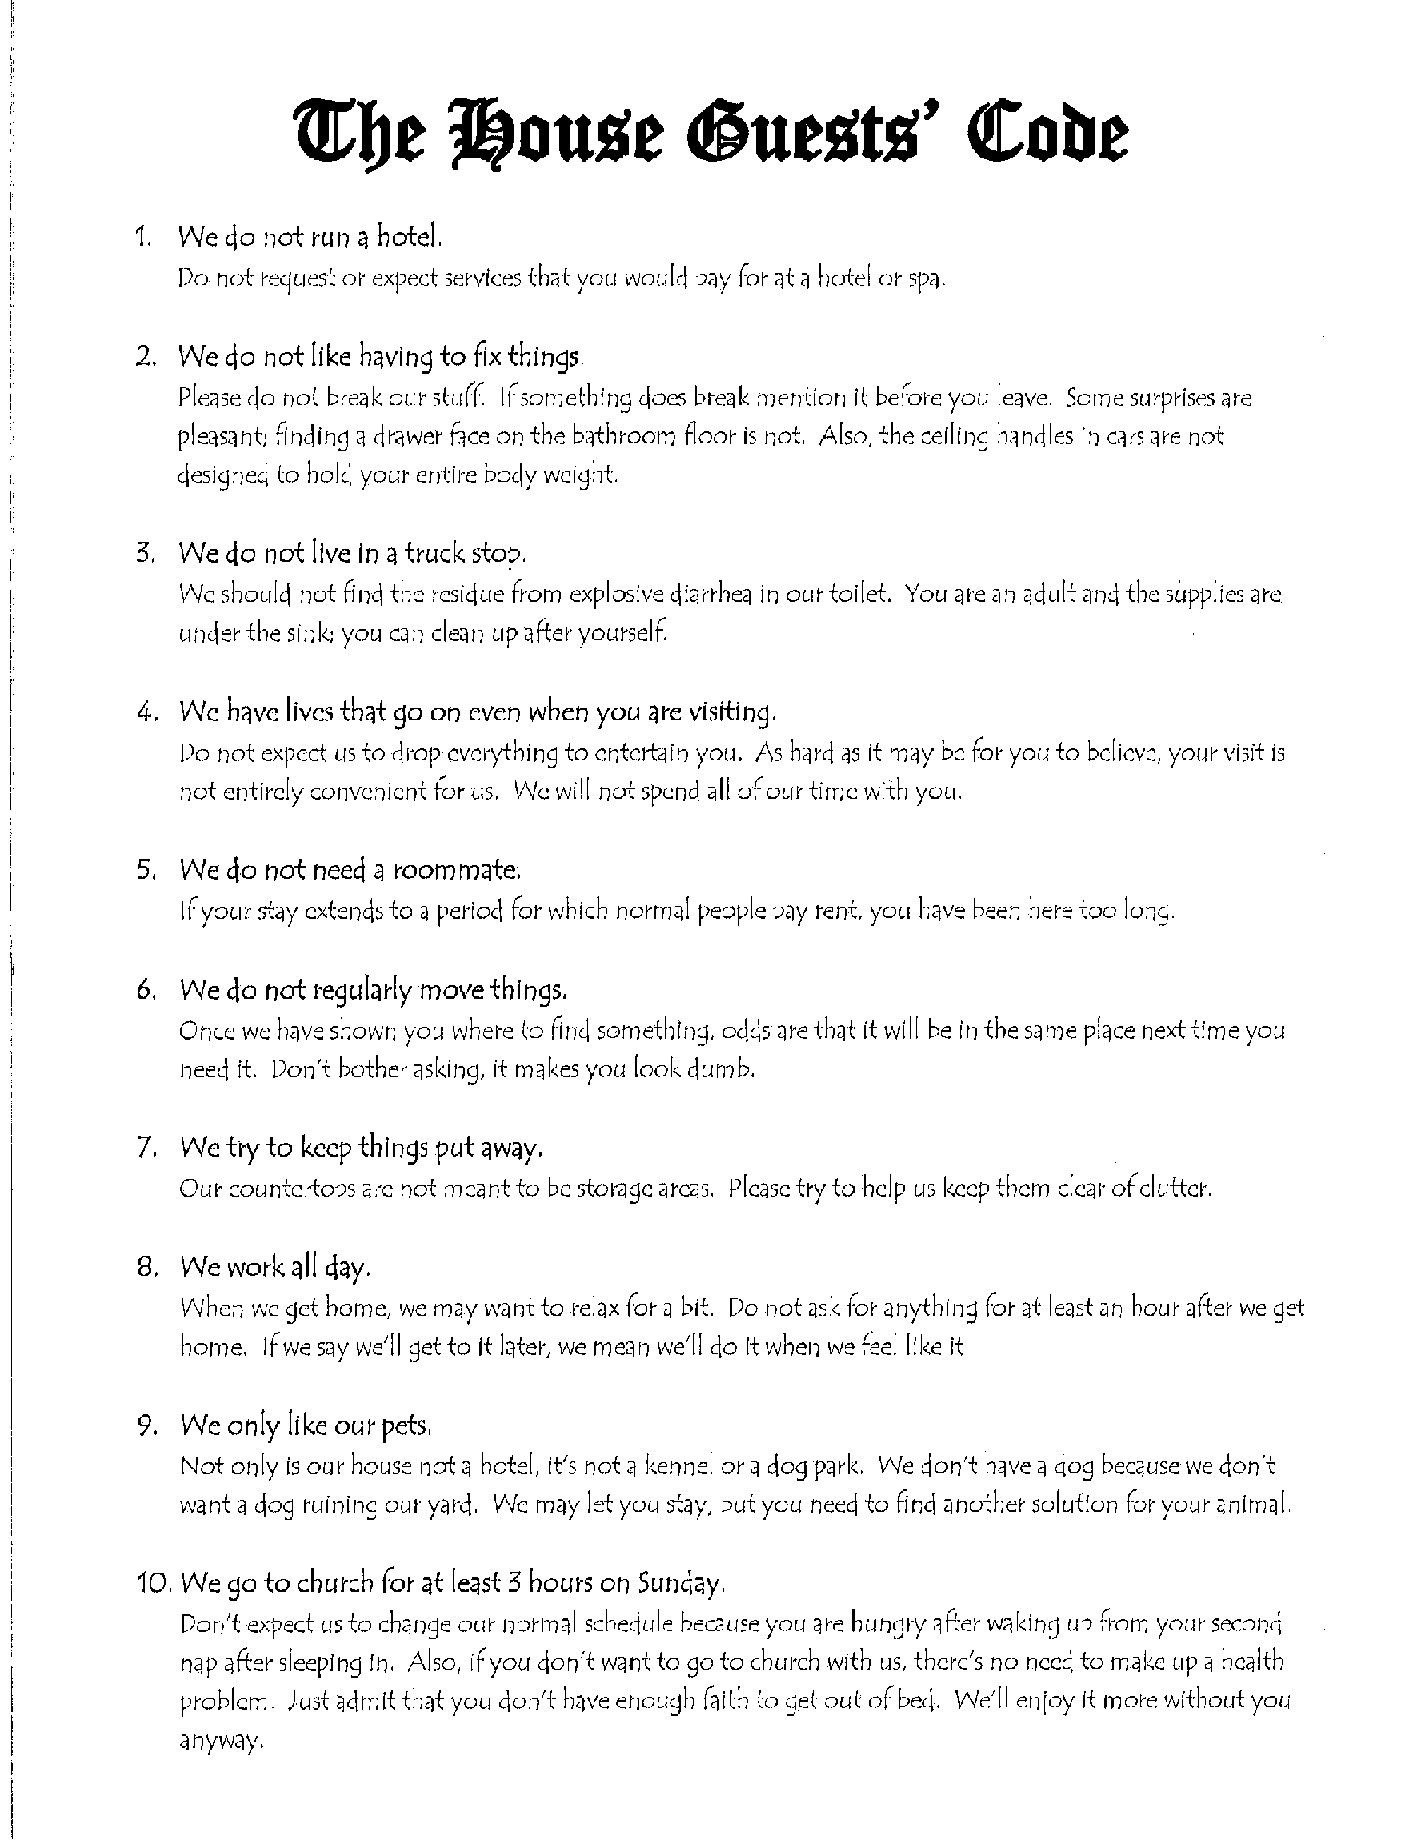 A list of rules every house guest should abide by  There is